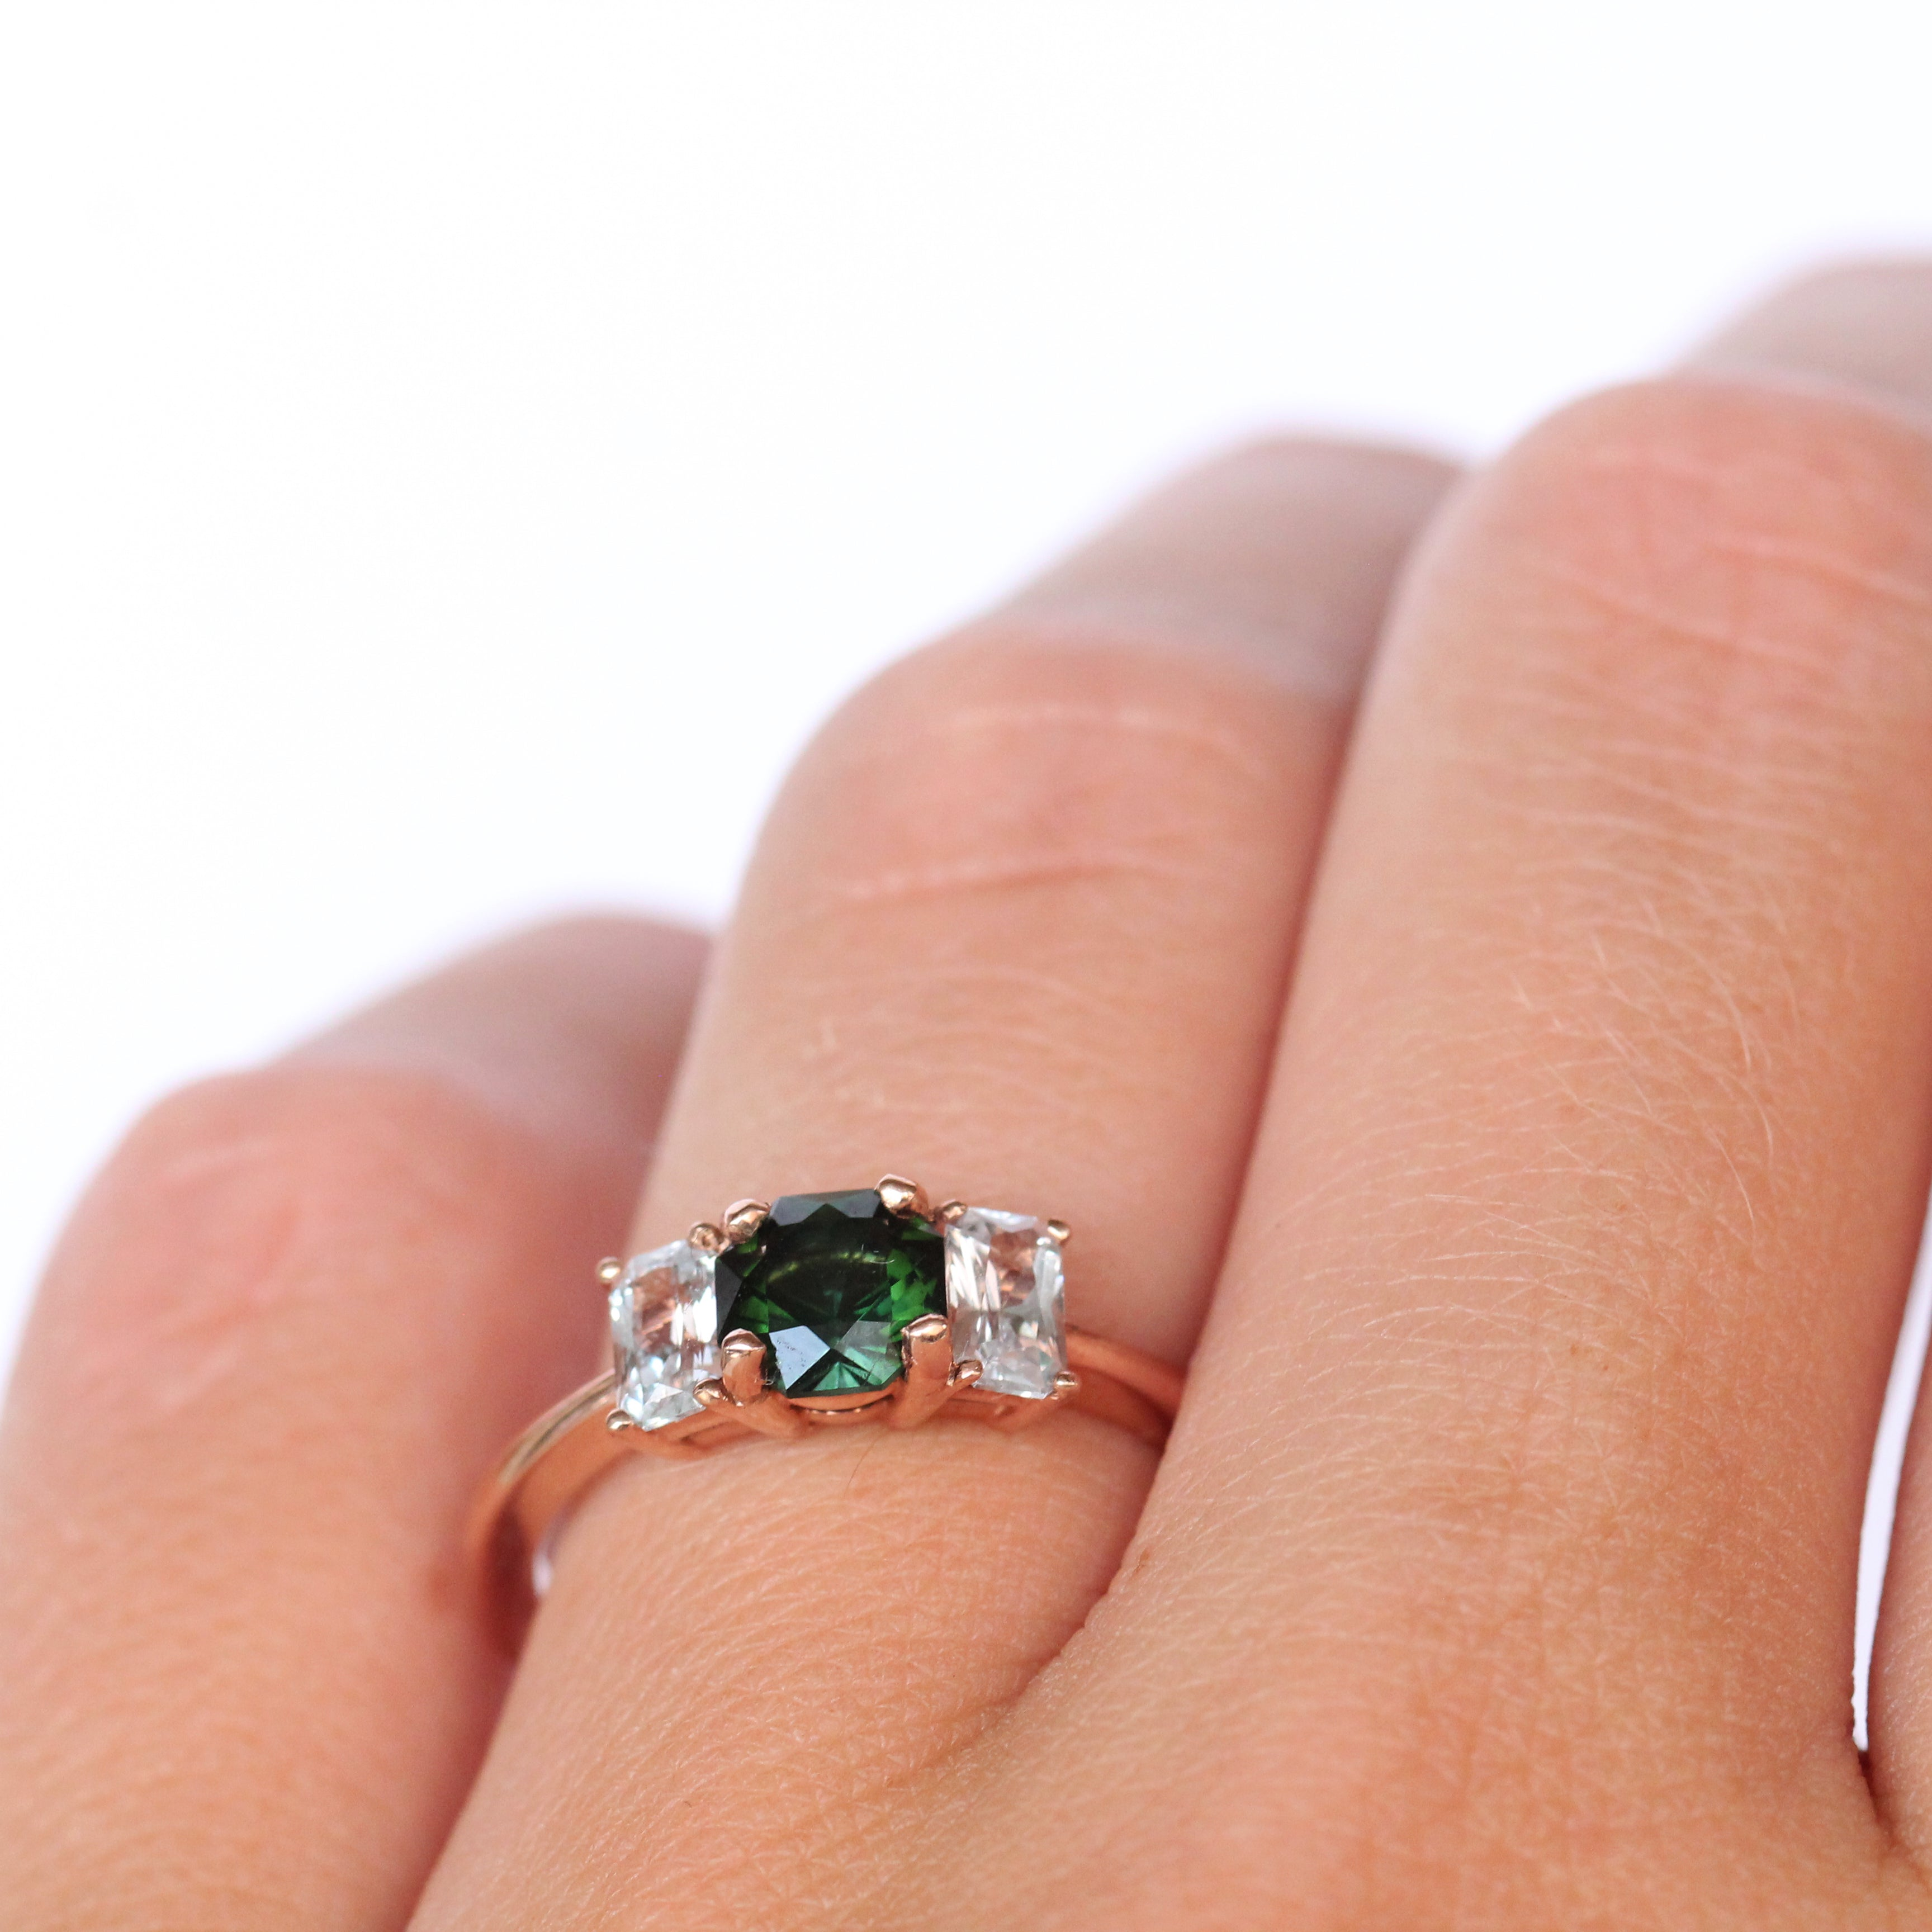 Hellen - Tourmaline and Topaz Three Stone Ring - Ready to size and ship - Celestial Diamonds ® by Midwinter Co.